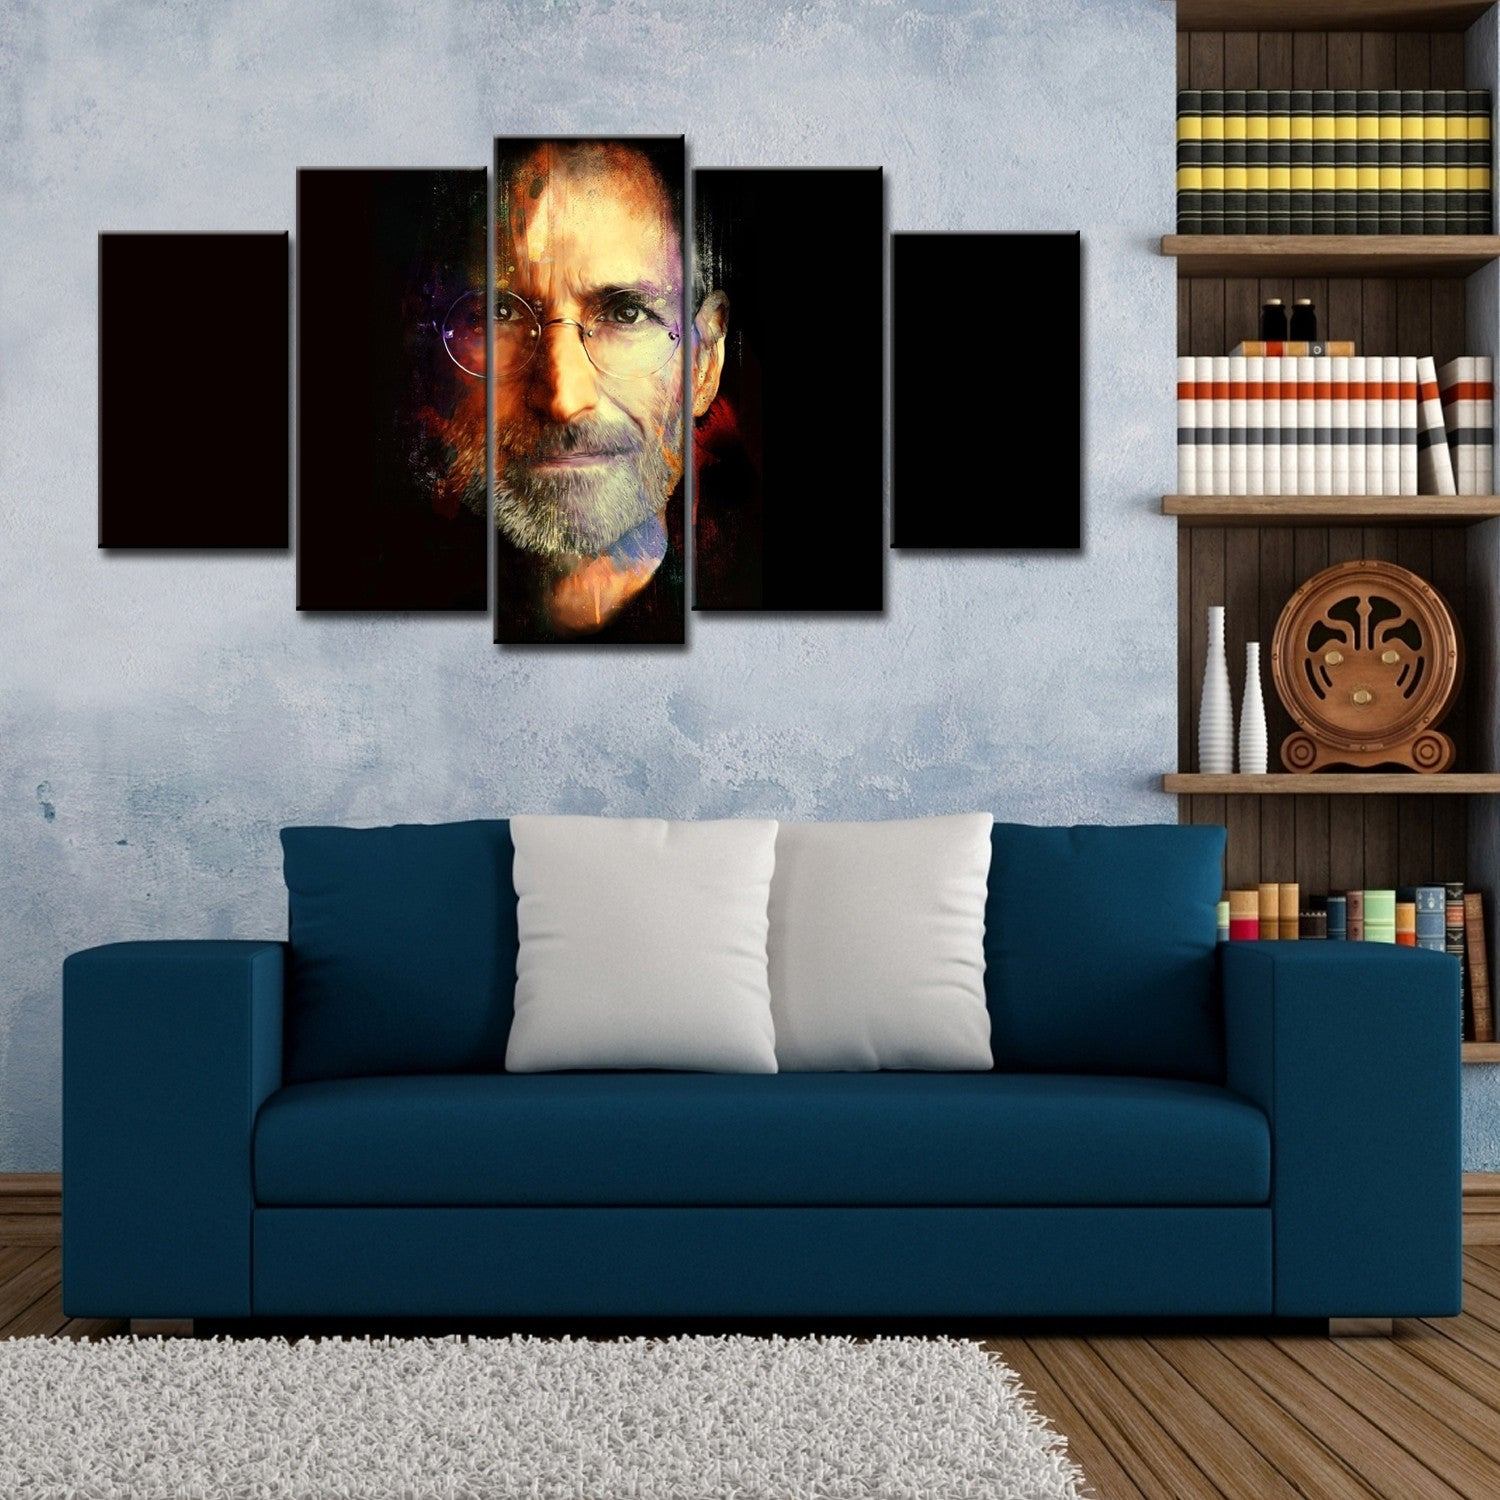 5 Pieces Of Steve Jobs Canvas Wall Art For Living Room